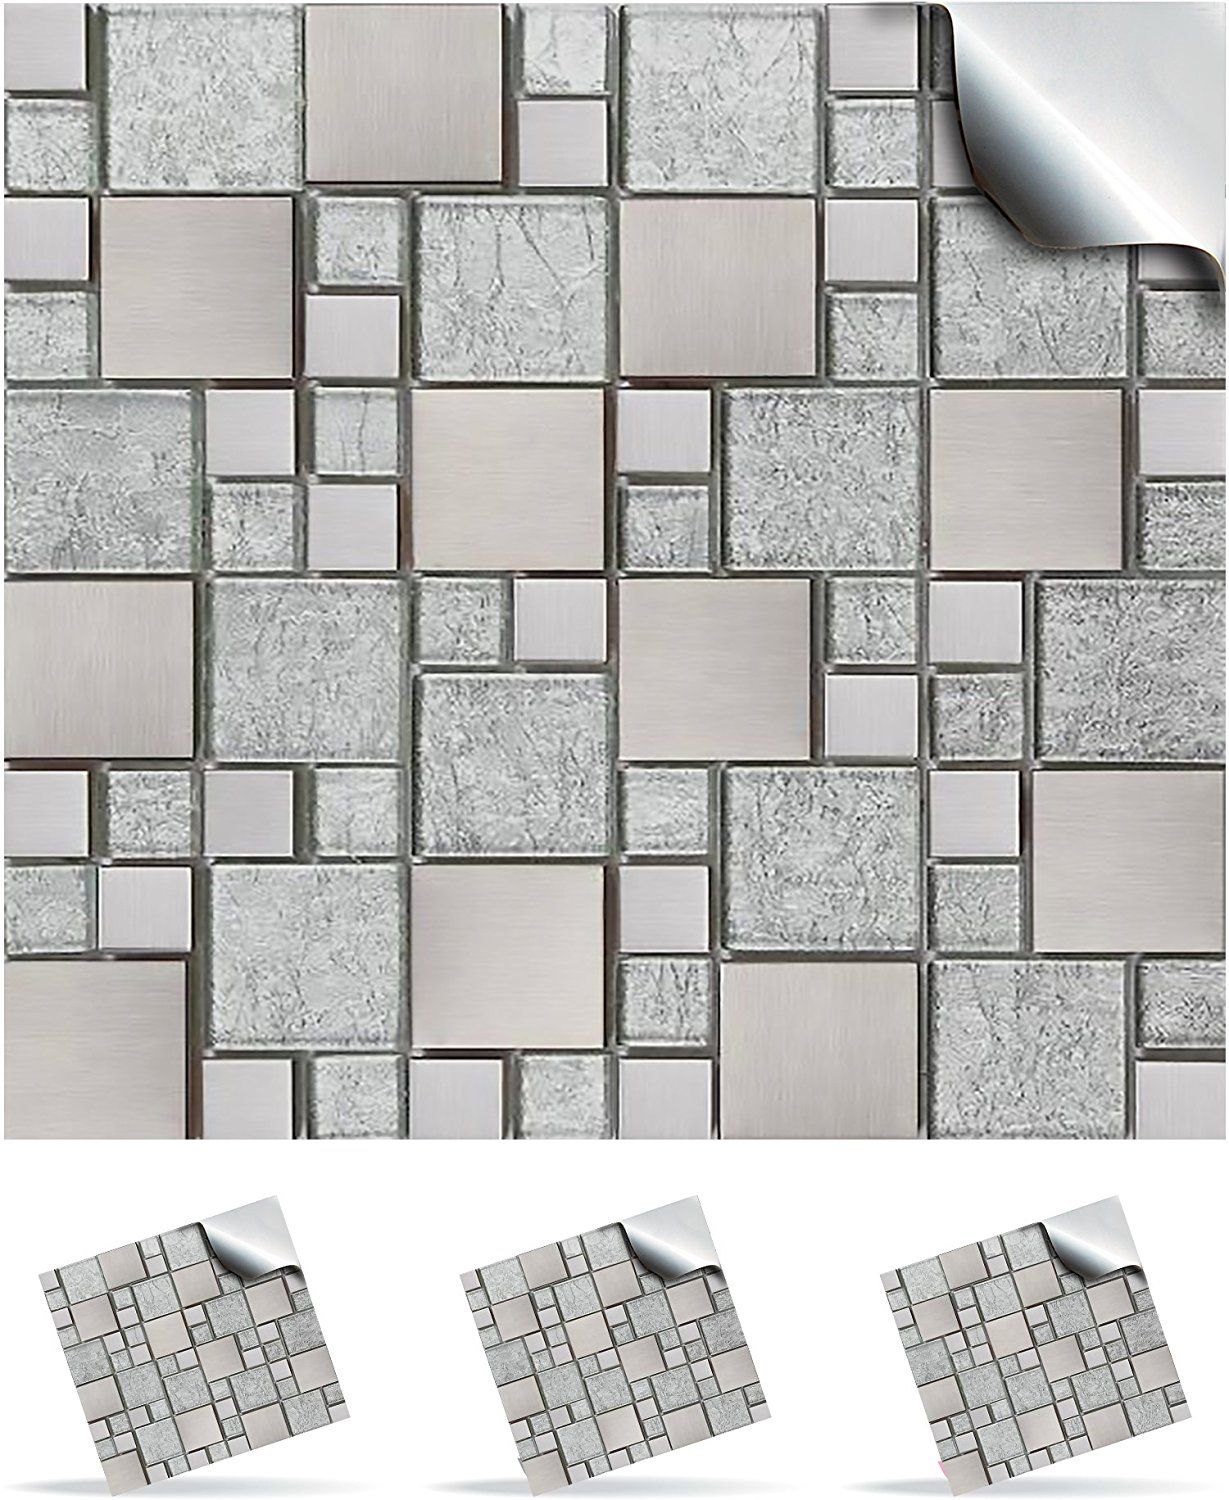 30 Mosaic Wall Tile Stickers For 150mm (6 inch) Square Tiles -(30 ...